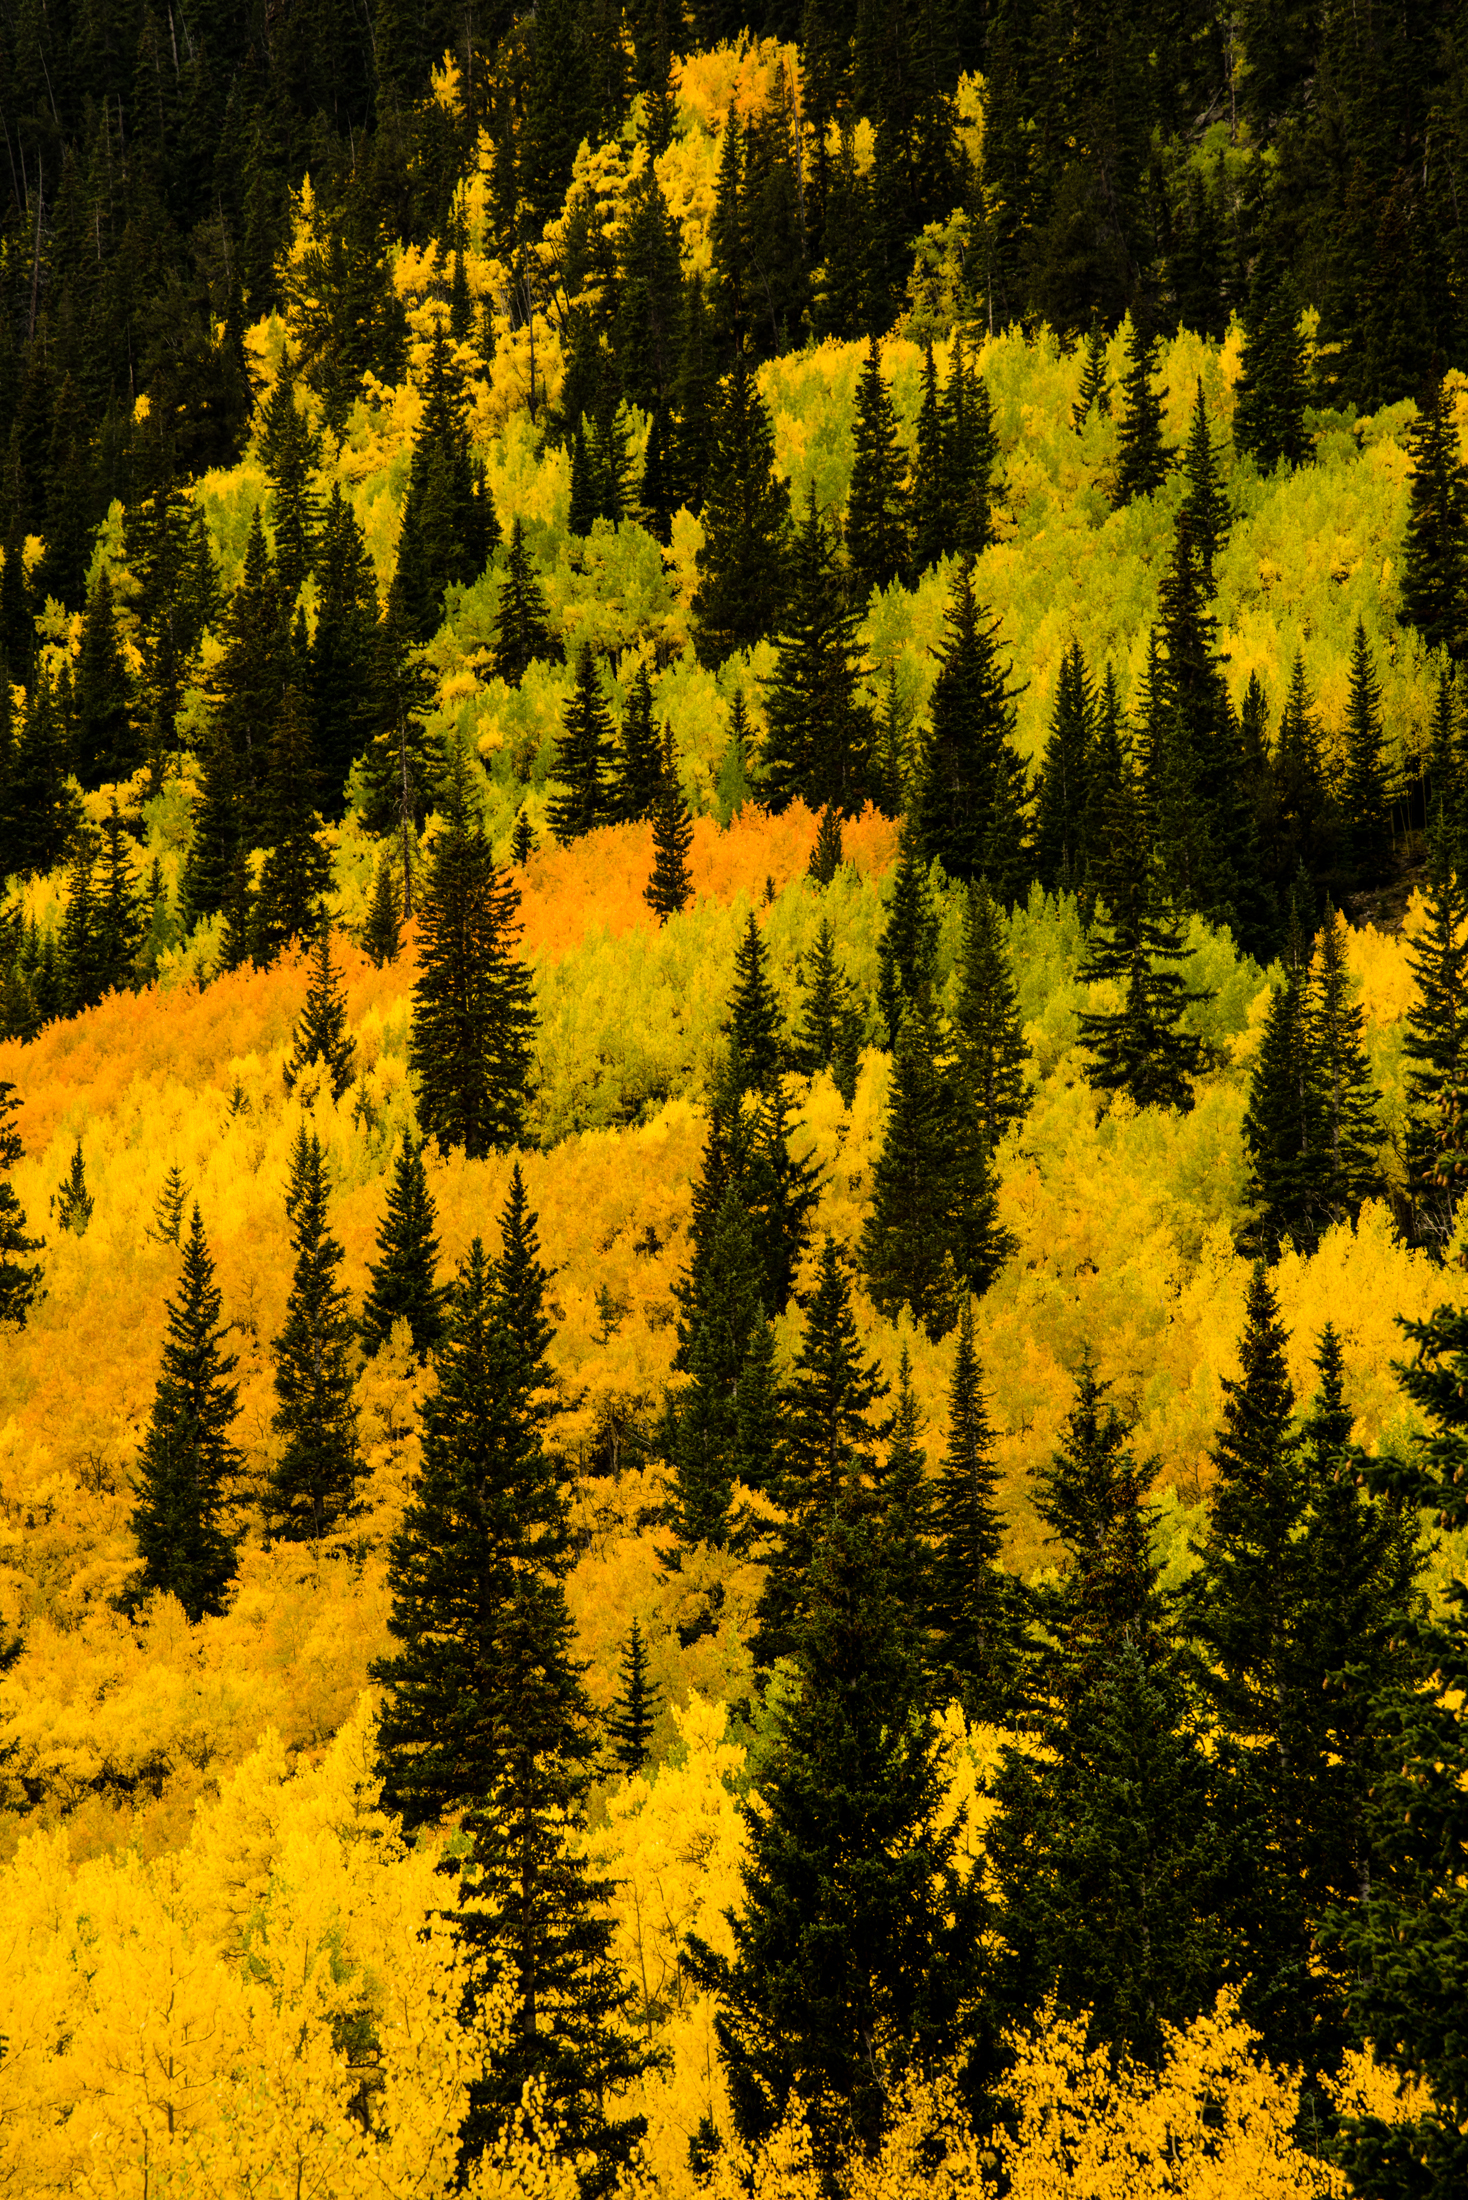 Fall Color Mix with Aspens